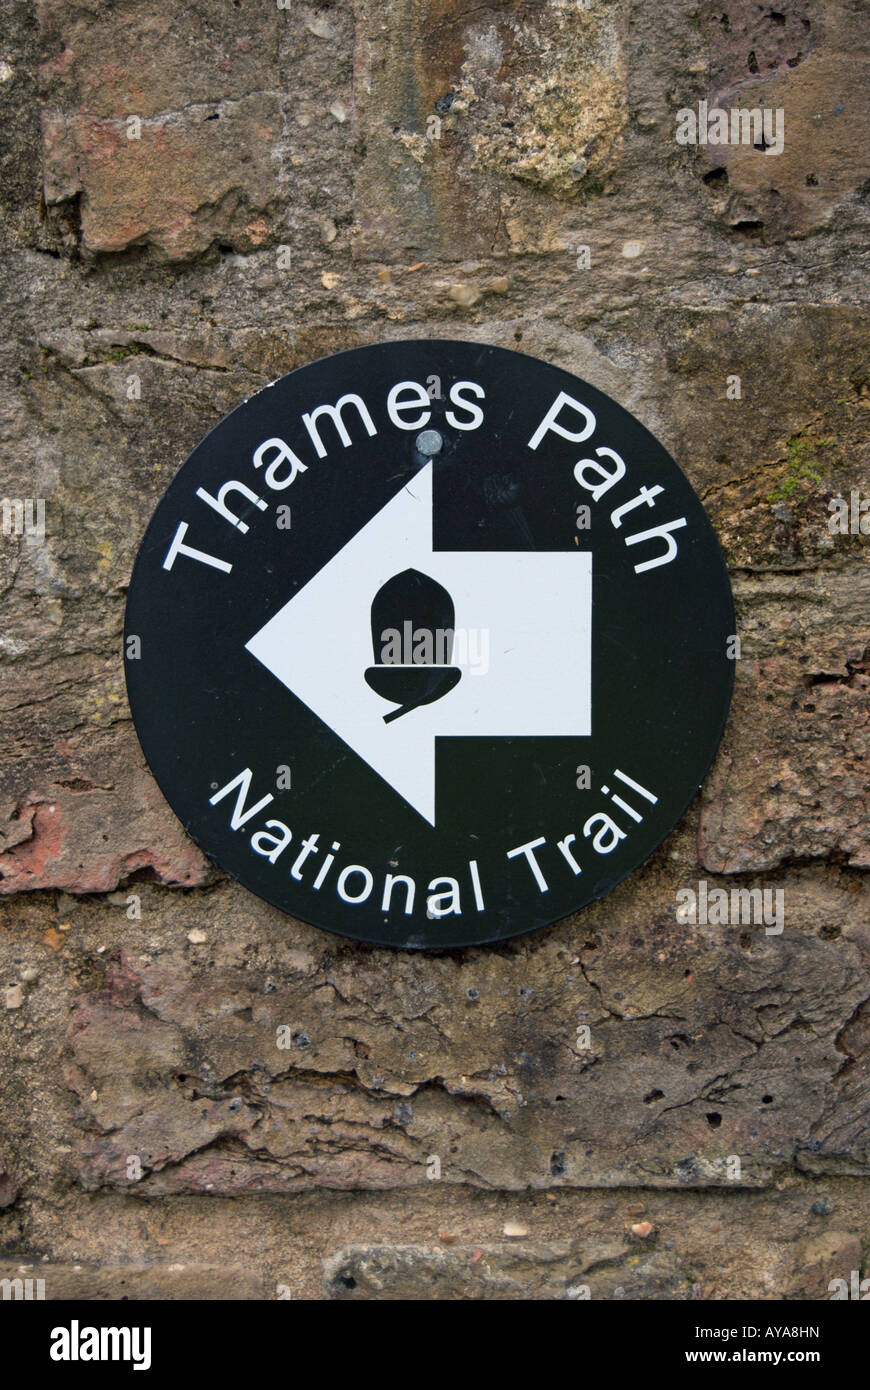 sign for the thames path, on the river thames, and national trail, in twickenham, middlesex, near london, england - Stock Image